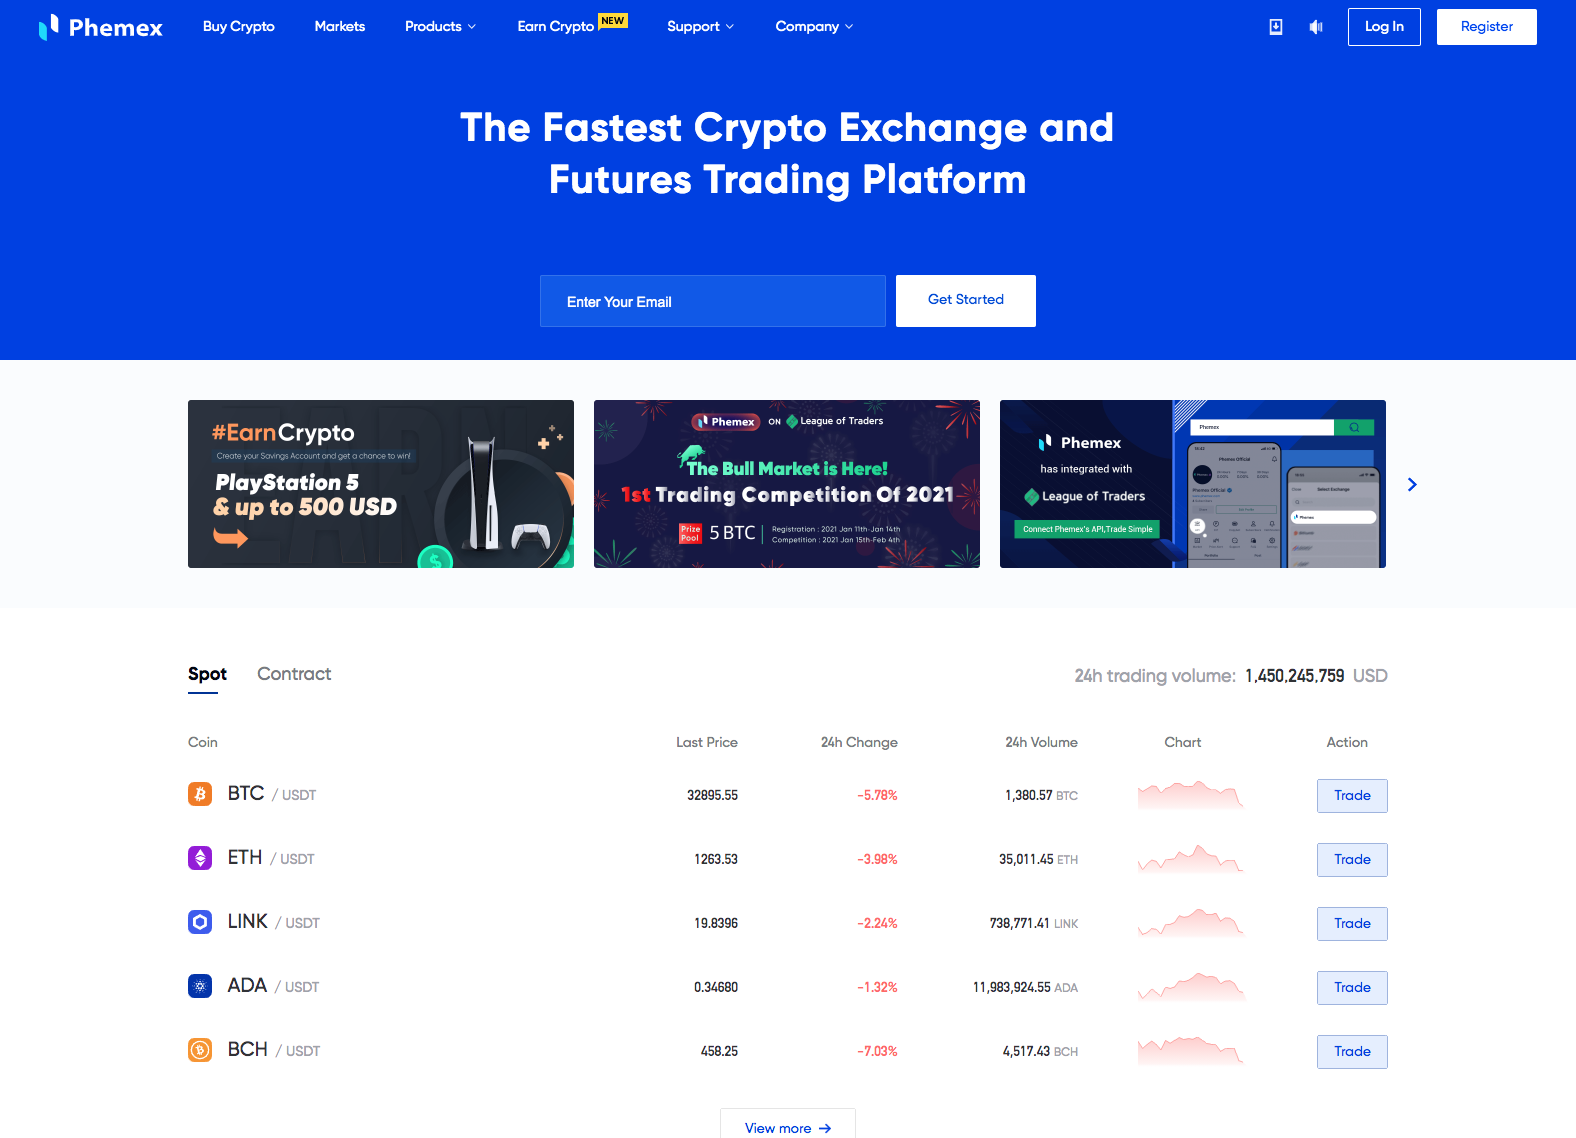 Best Crypto and Bitcoin Exchanges of 2021